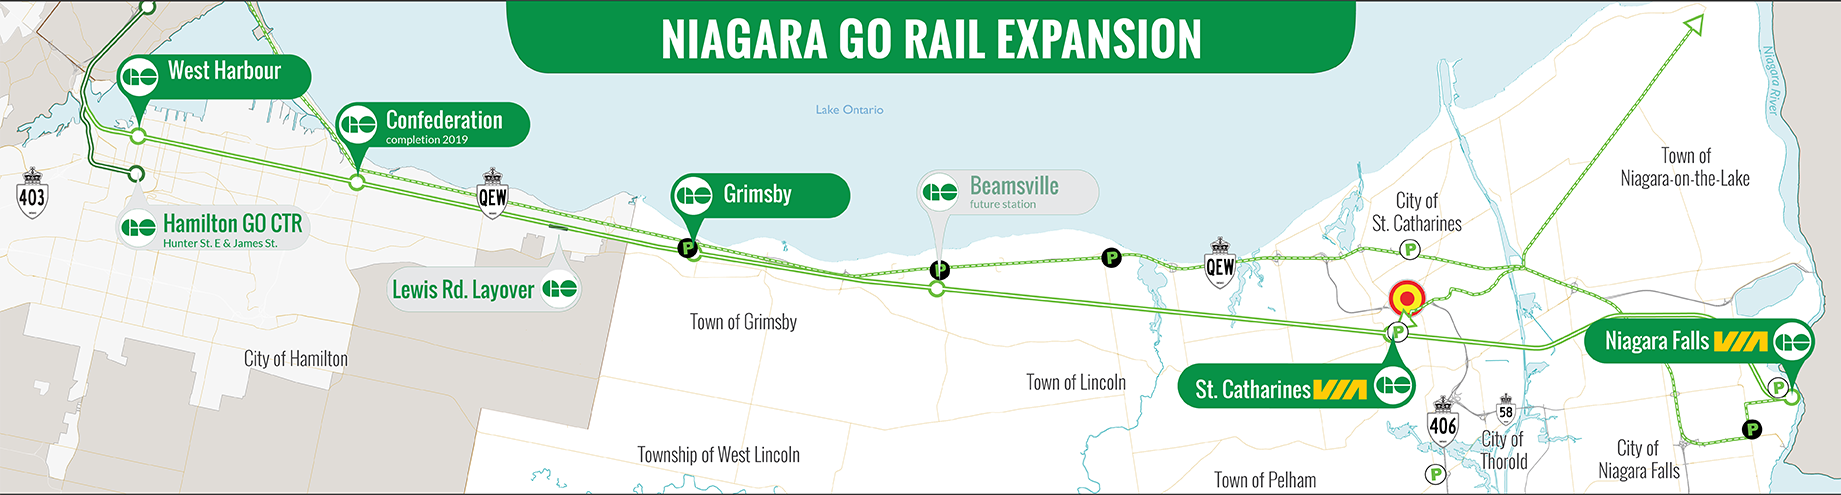 A map representing the three confirmed GO station areas in Niagara. Confirmed stations are located in Grimsby (west of Casablanca Boulevard and south of South Servic